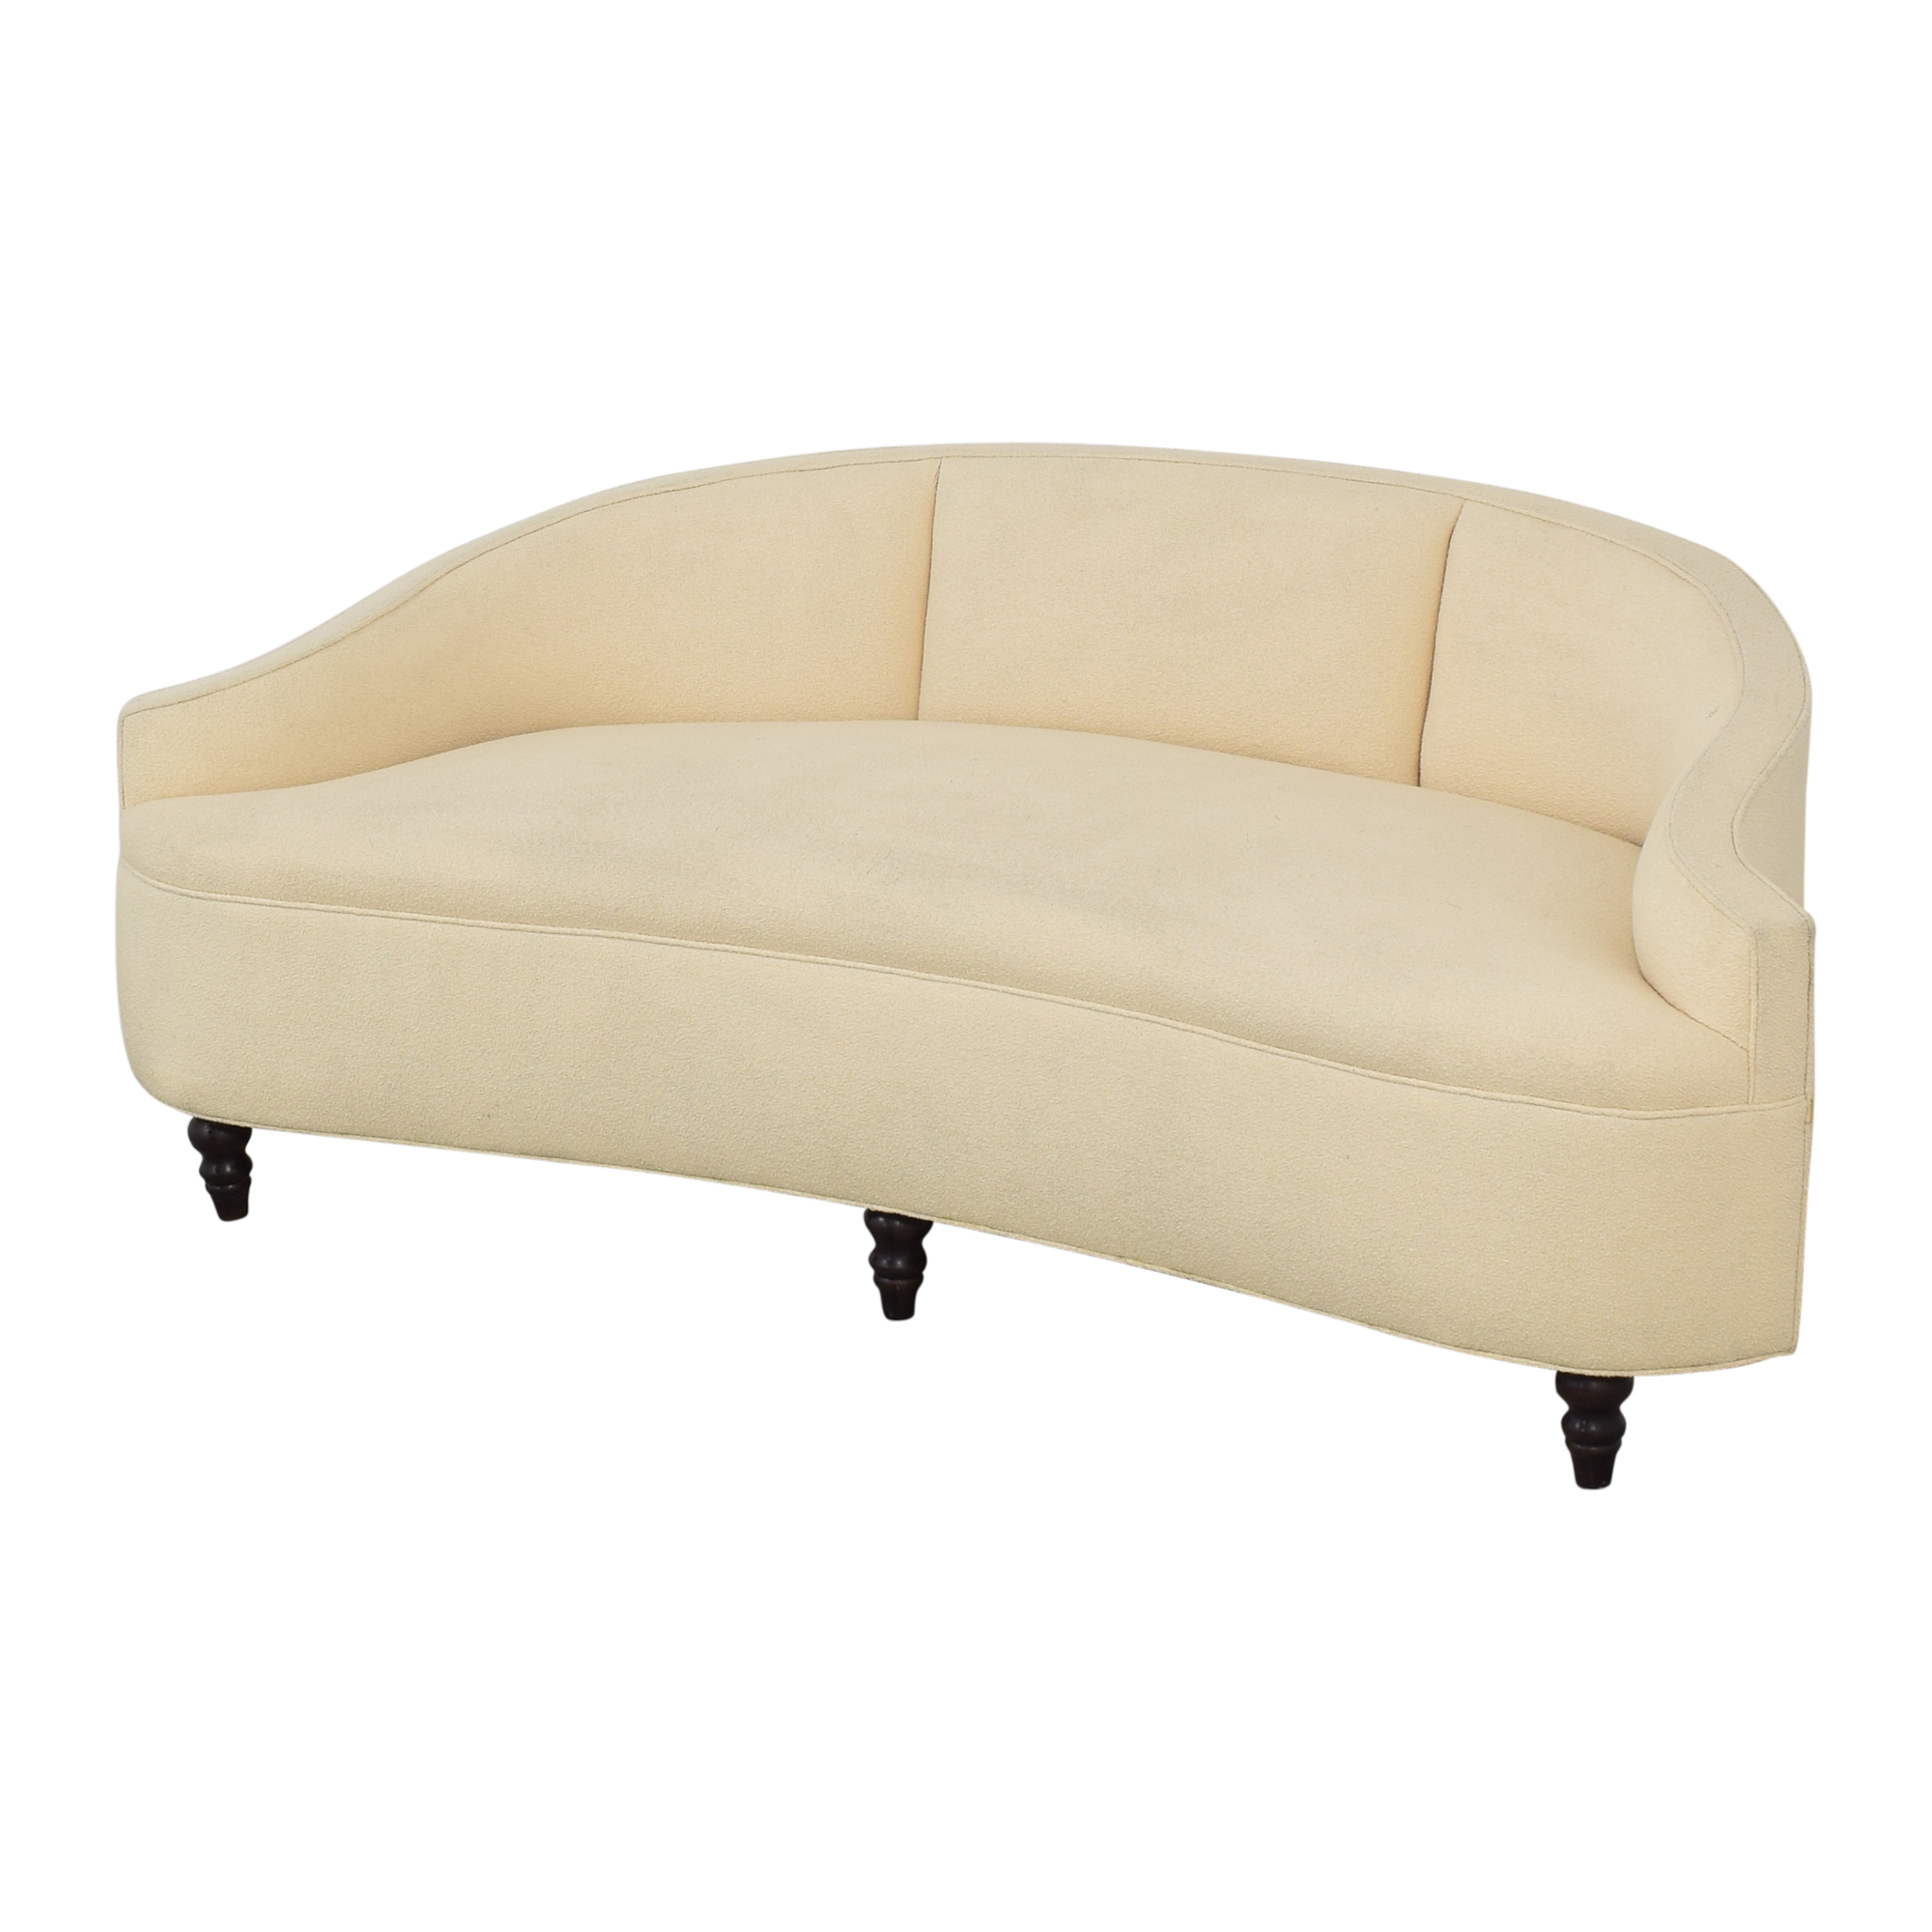 Summer Hill Crescent Upholstered Sofa pa